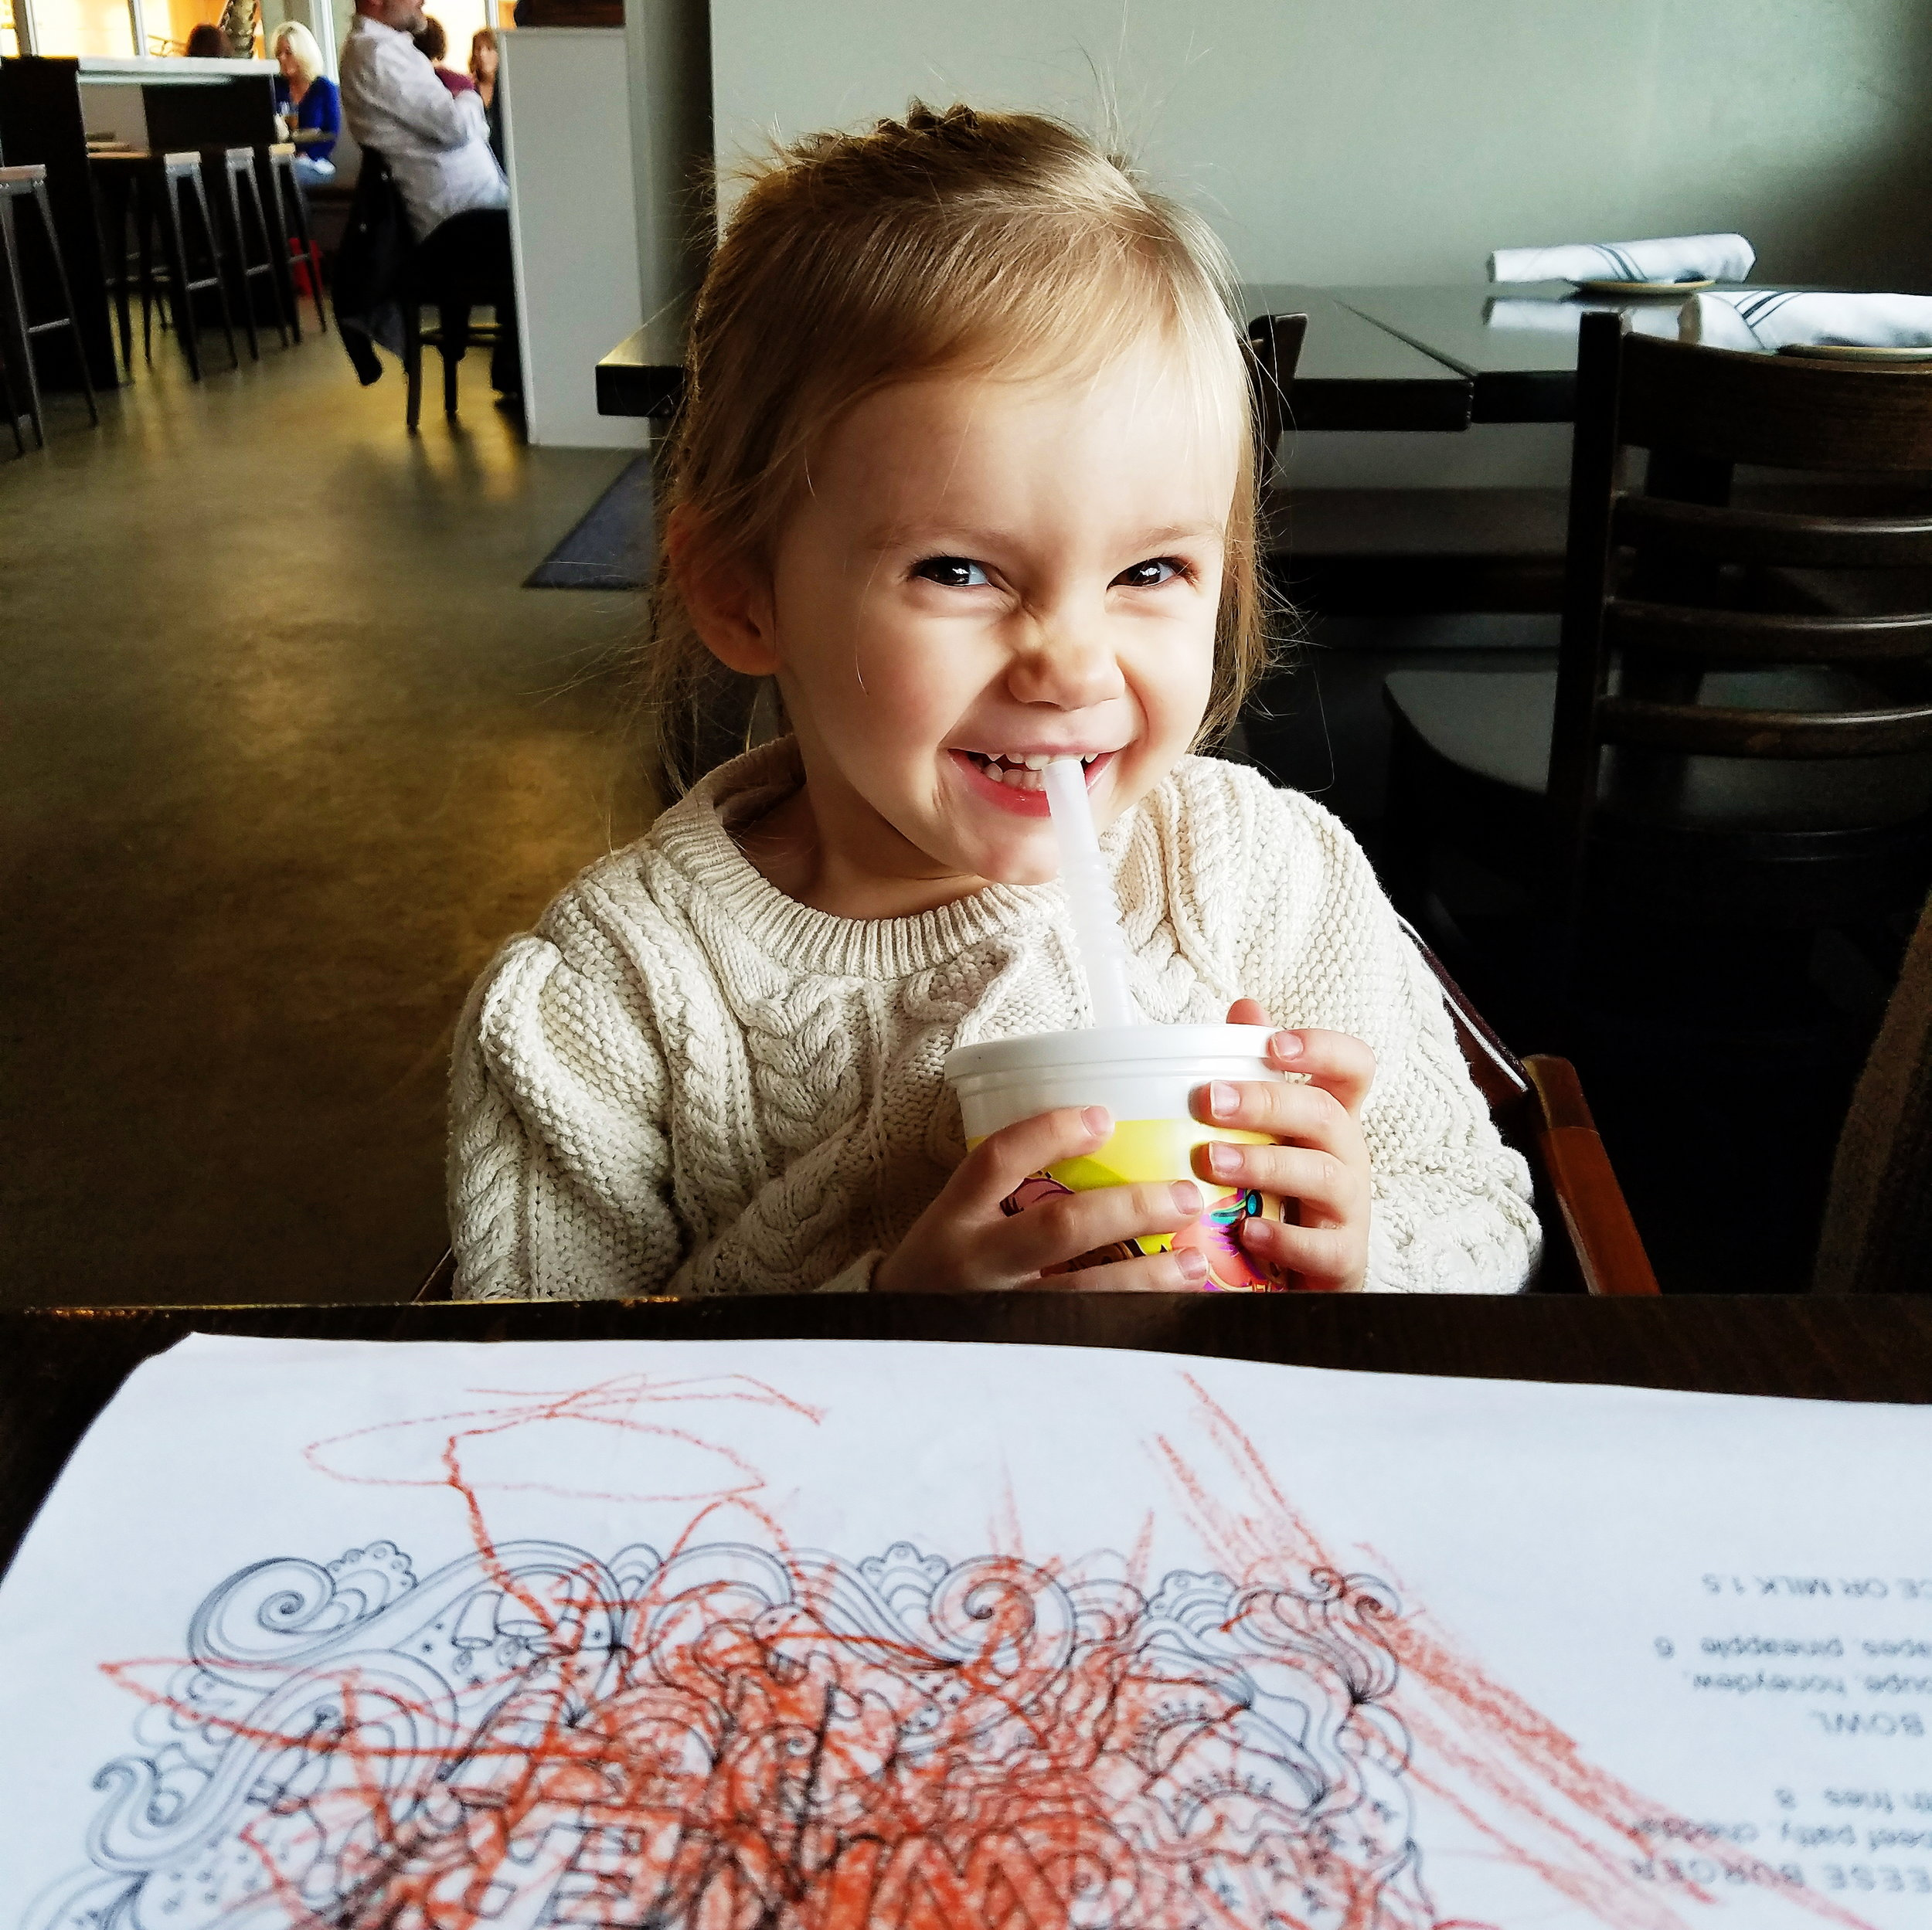 I love sneaking out for a long lunch with this cheeky little girl!